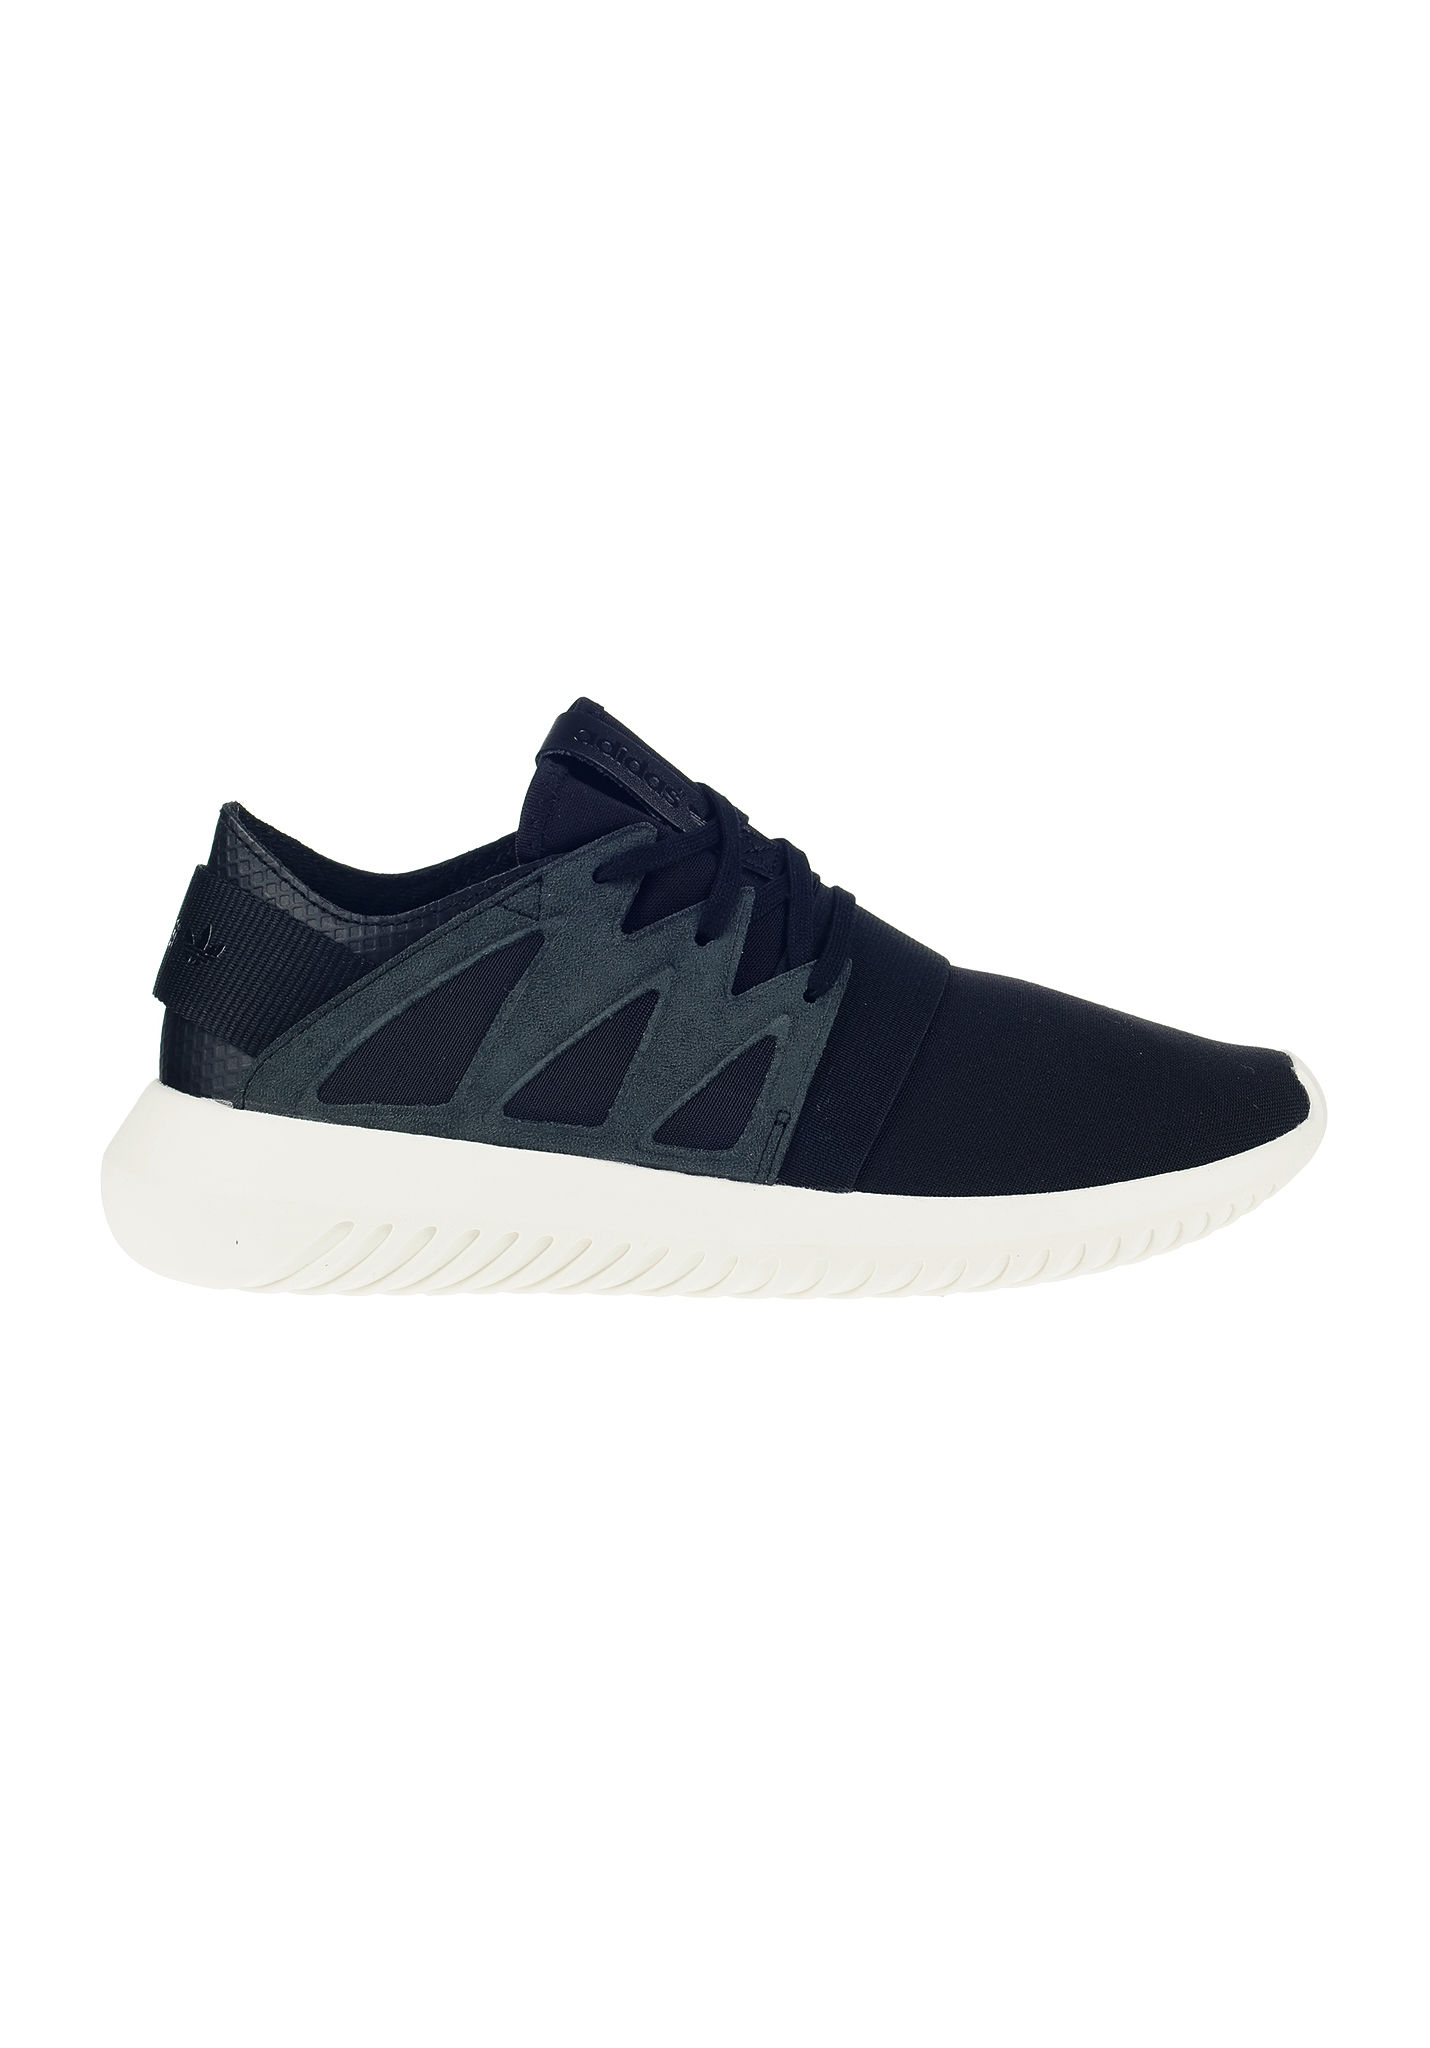 Adidas Tubular Radial Shoes Gray adidas Regional